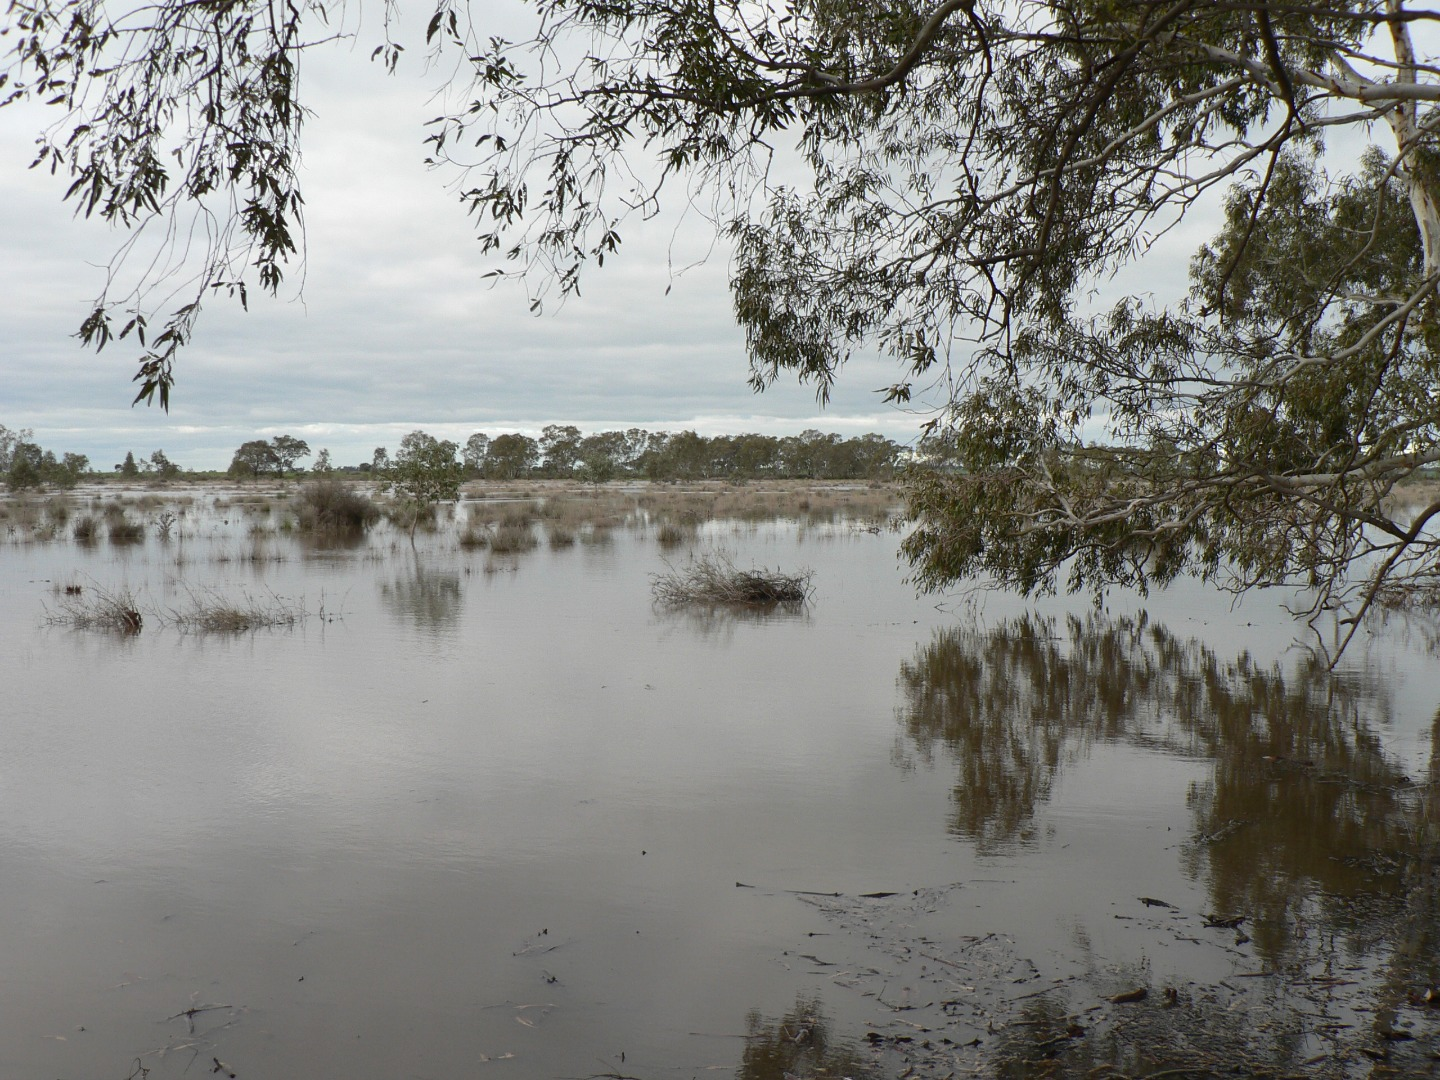 The east side of the redgum swamp has water photo's with a number of water birds already present.